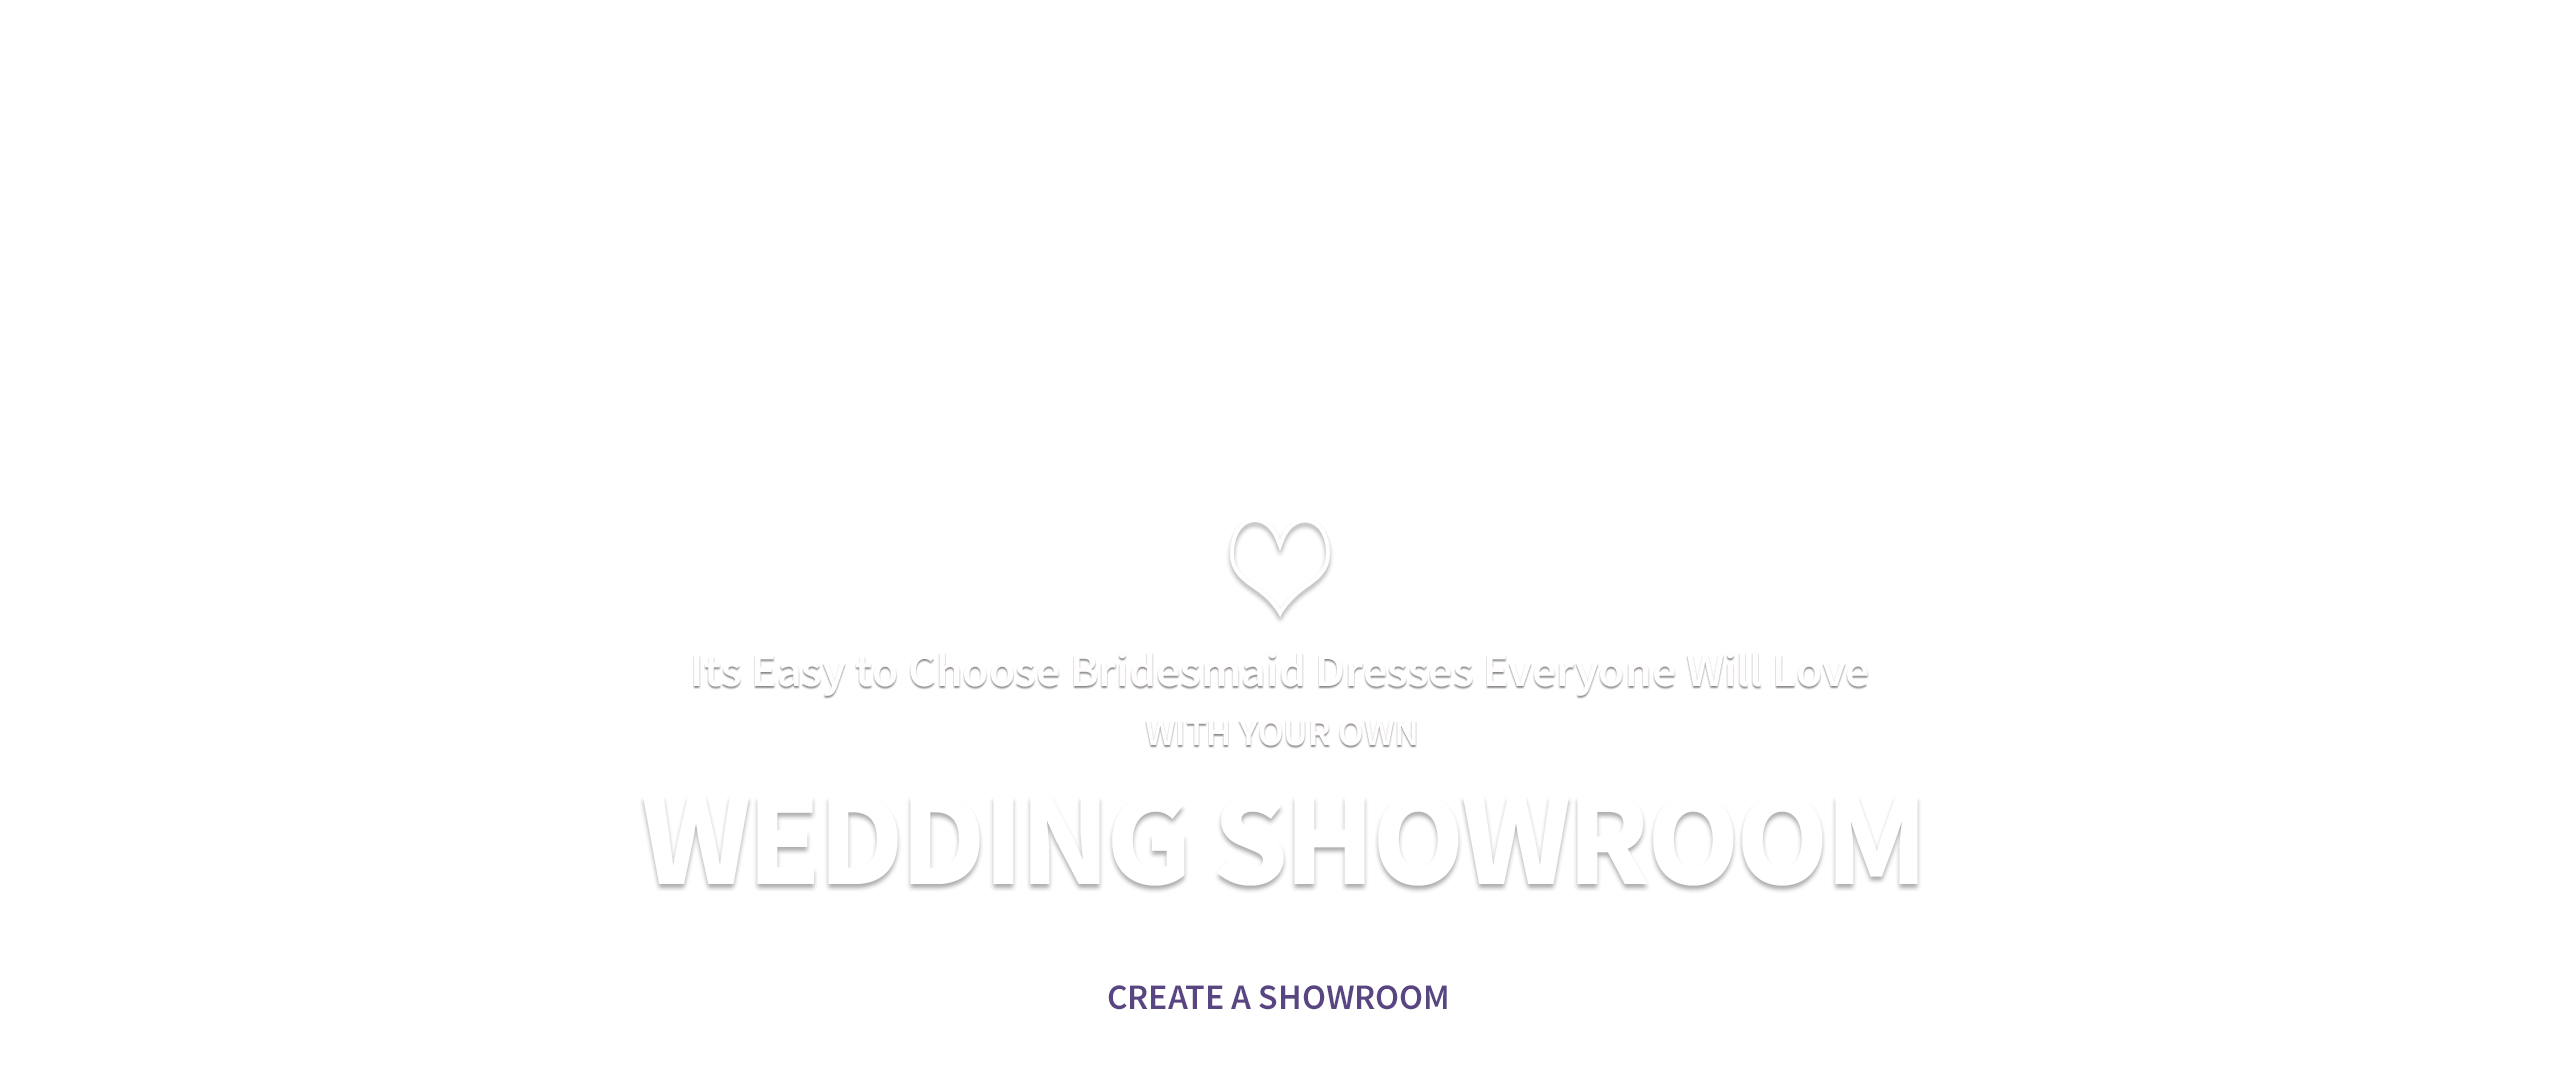 Collaborate on a Look You'll All Love with Your Own Wedding Showroom